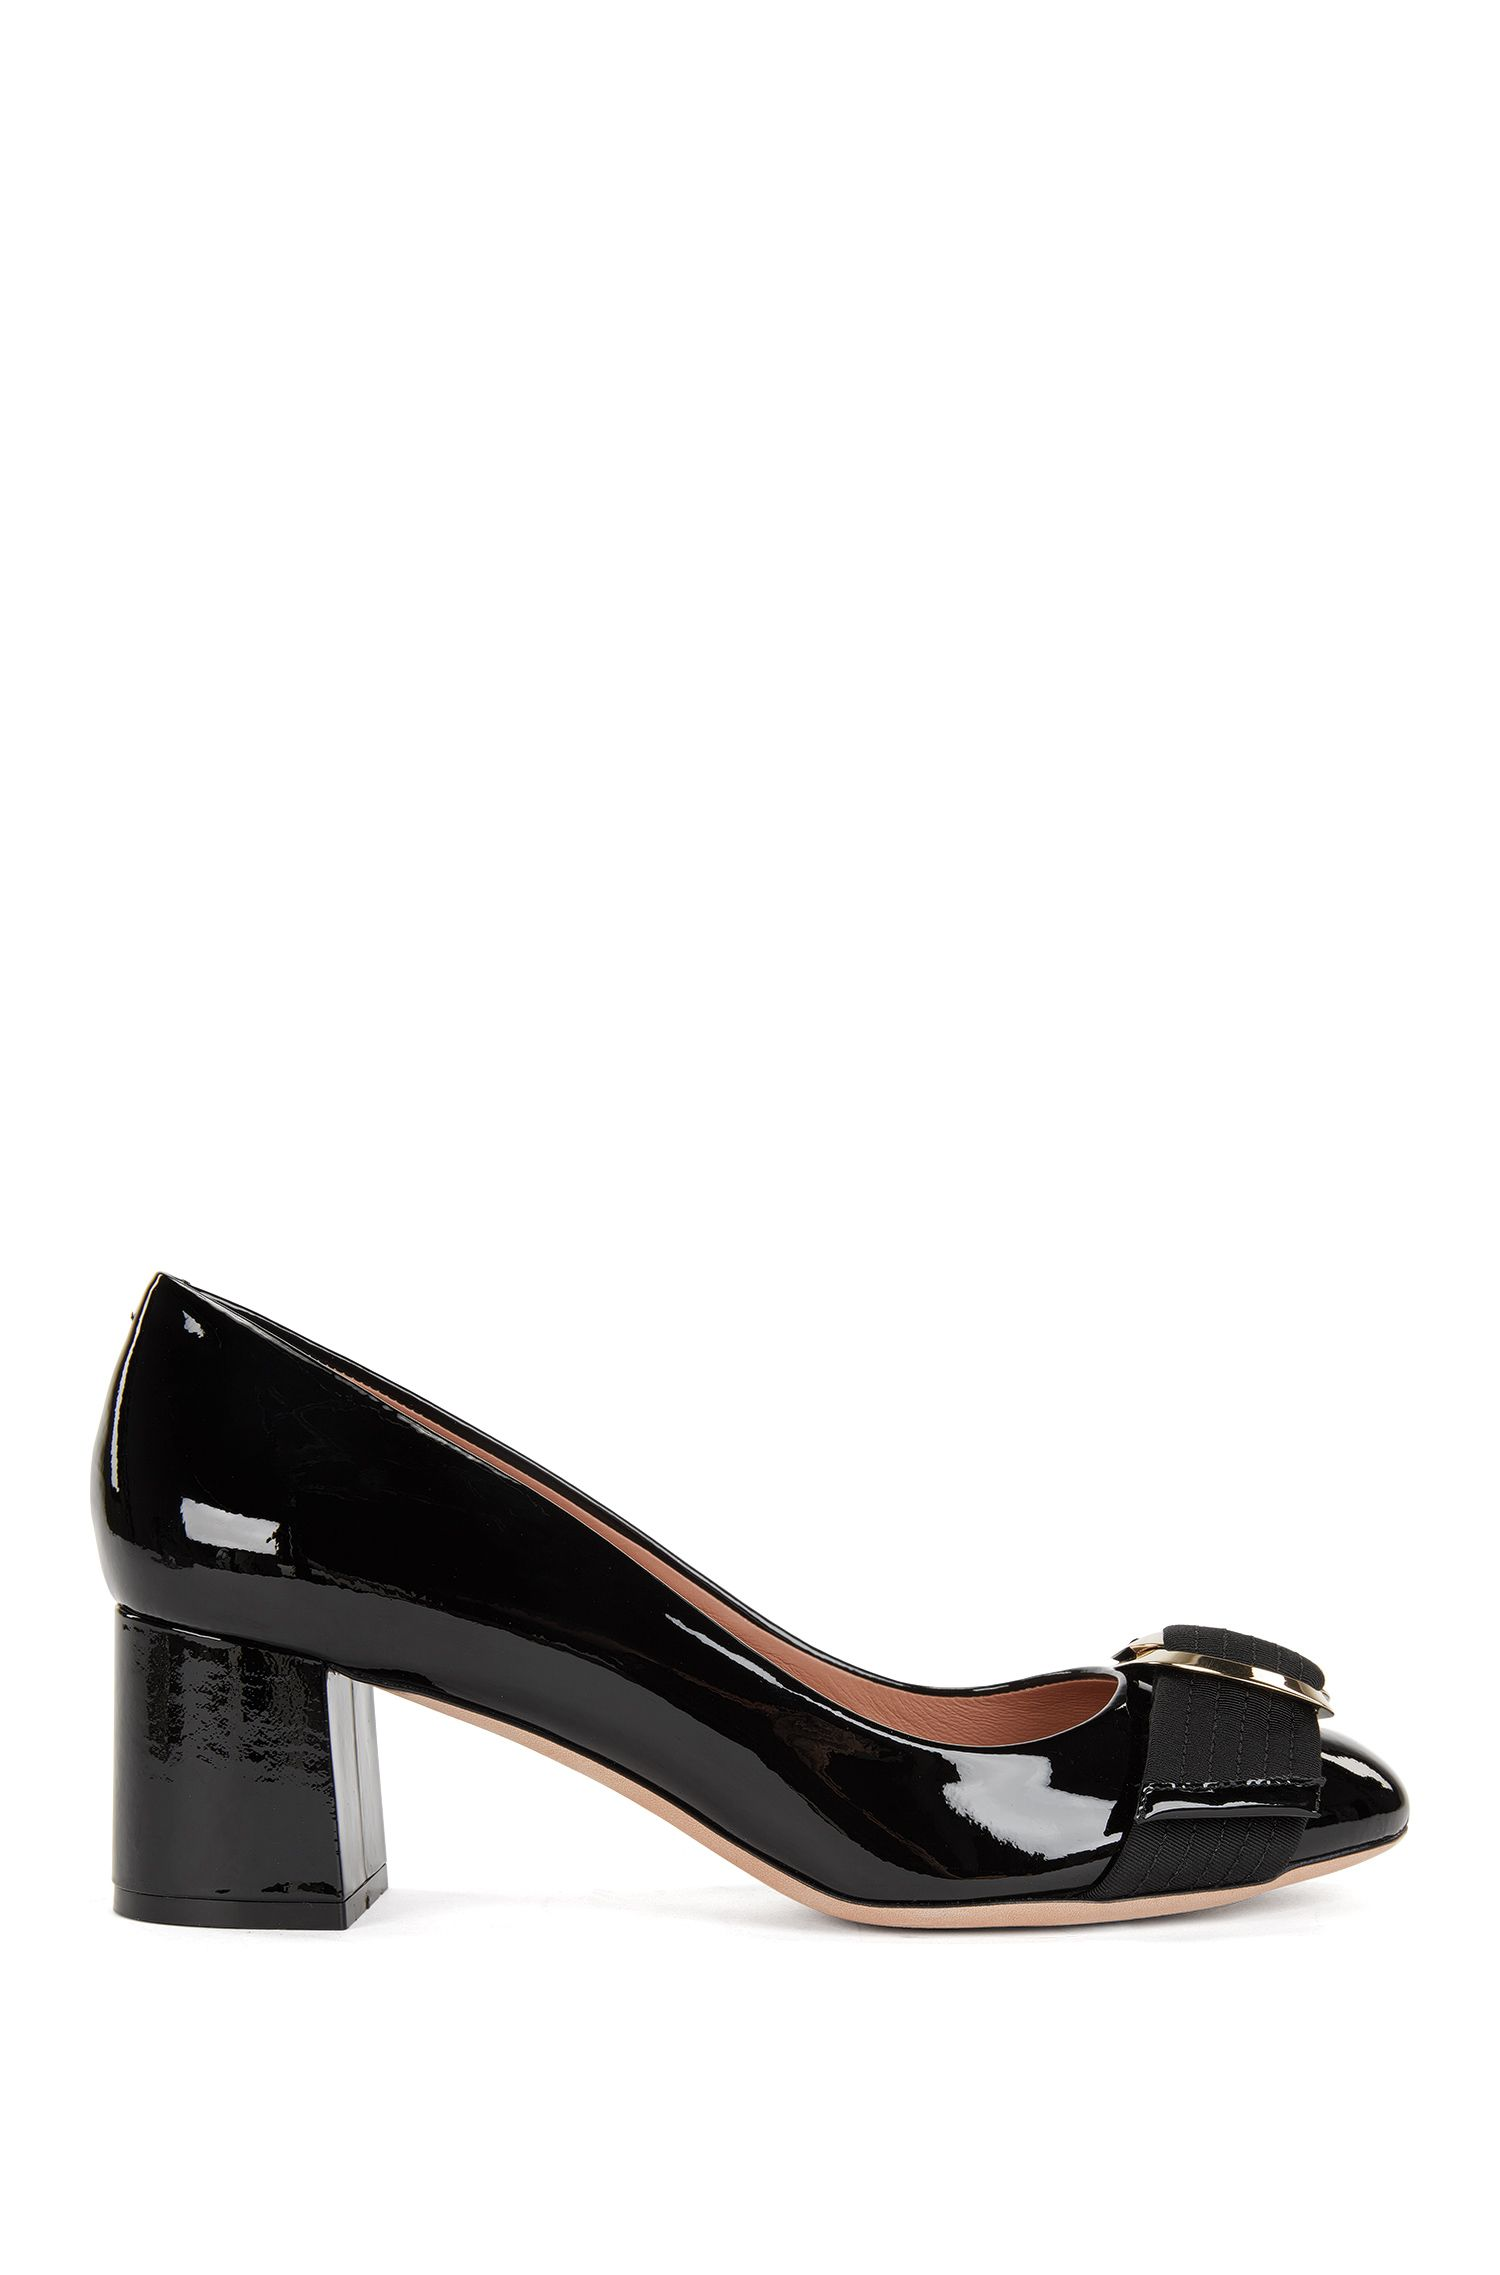 Patent leather pumps with double-ring buckle